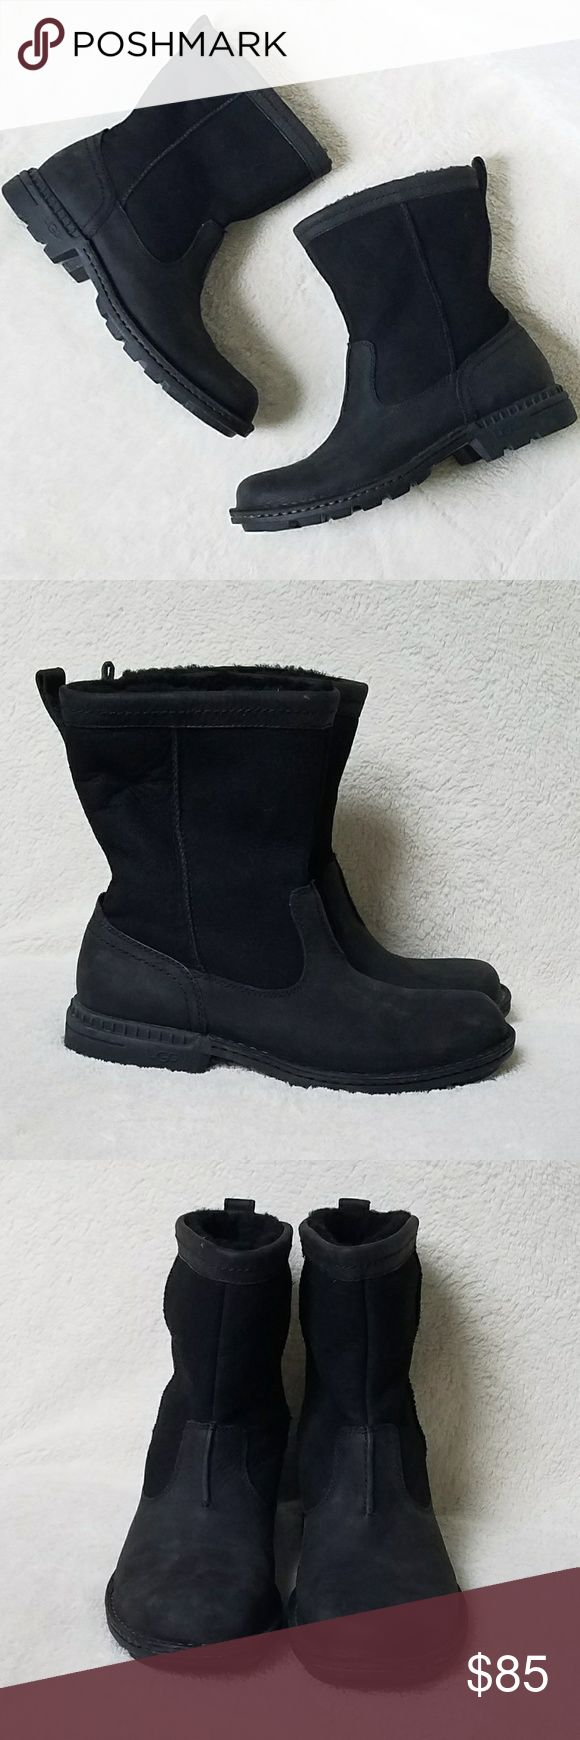 Men's Foerster Ugg Boots EUC! Men's Foerster Ugg Boots in size 8.5. Genuine leather and sheepskin outer and rugged rubber soles. These all-weather boots are a great boot for everyday  wear. Shaft lining is synthetic to stand up to wear and weather but insole lining is genuine sheepskin. Retail new $200. UGG Shoes Boots